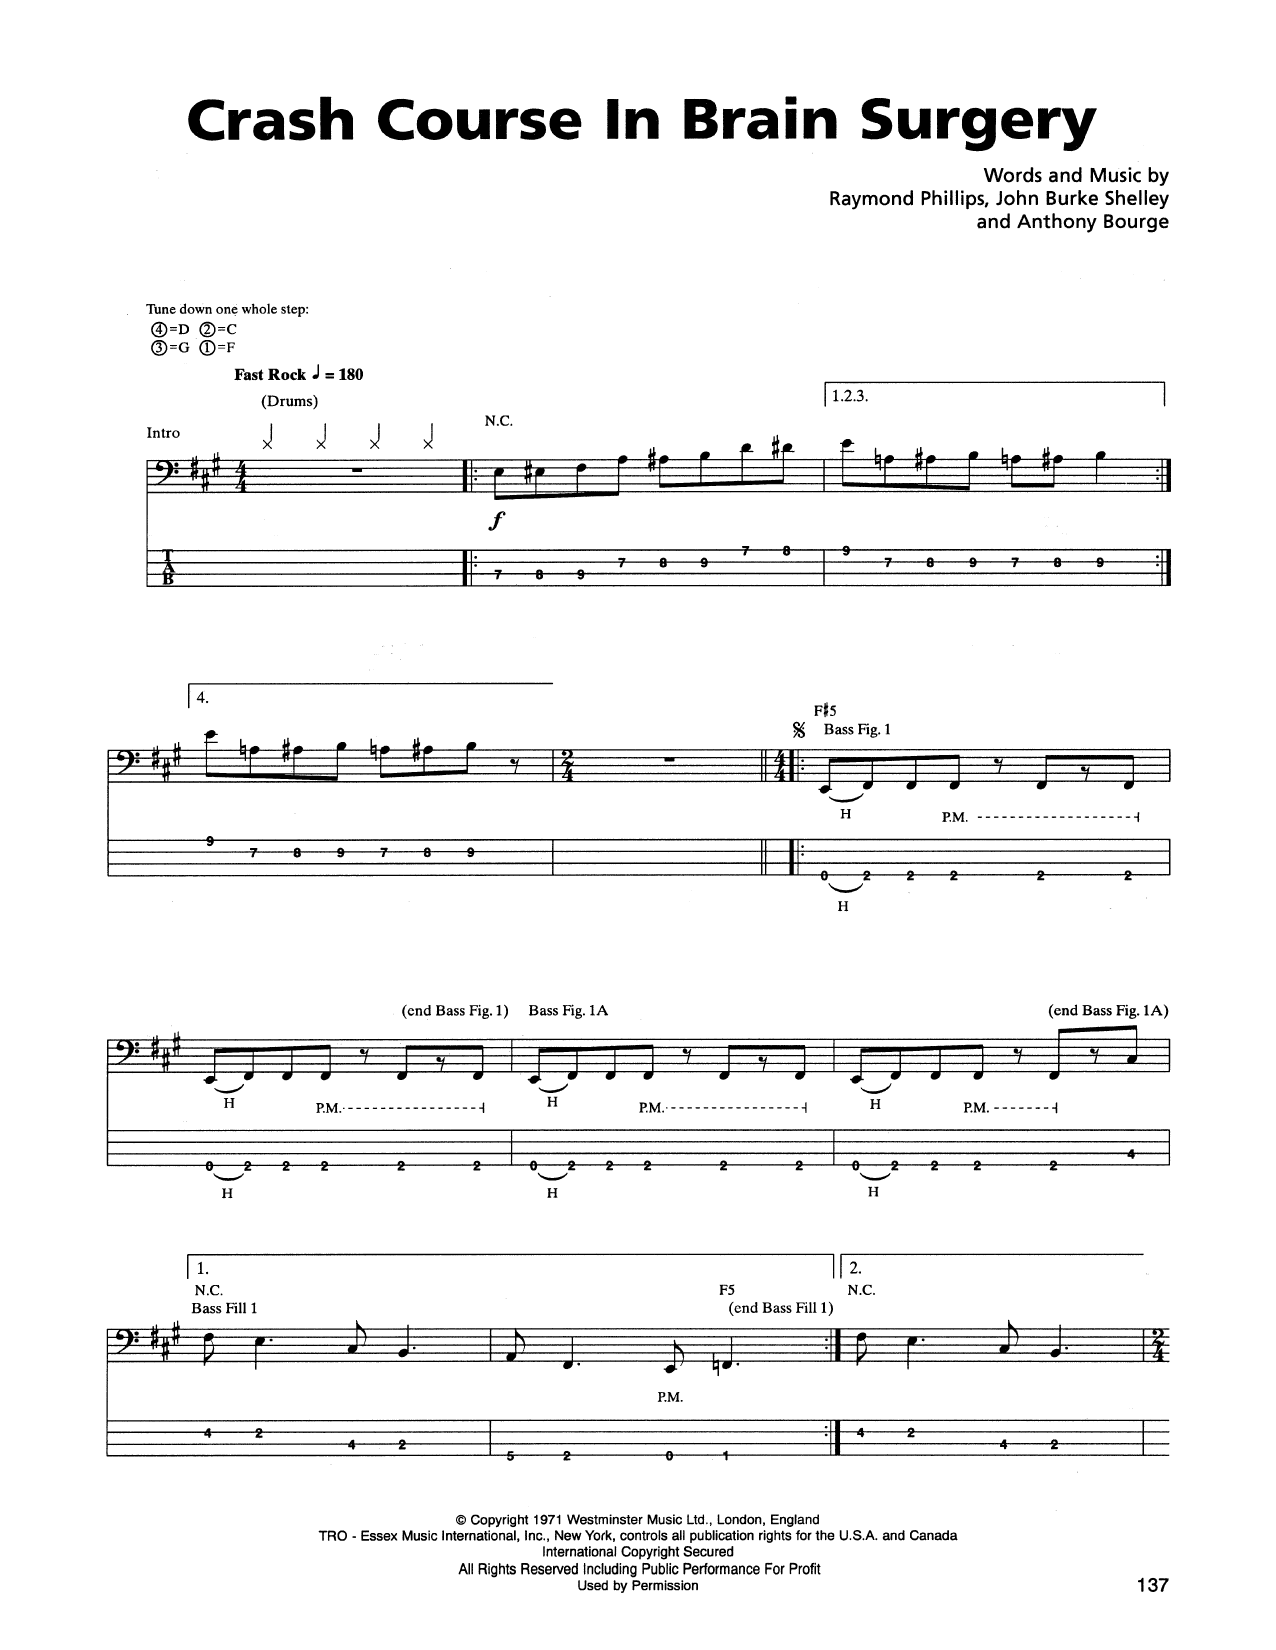 Crash Course In Brain Surgery Sheet Music